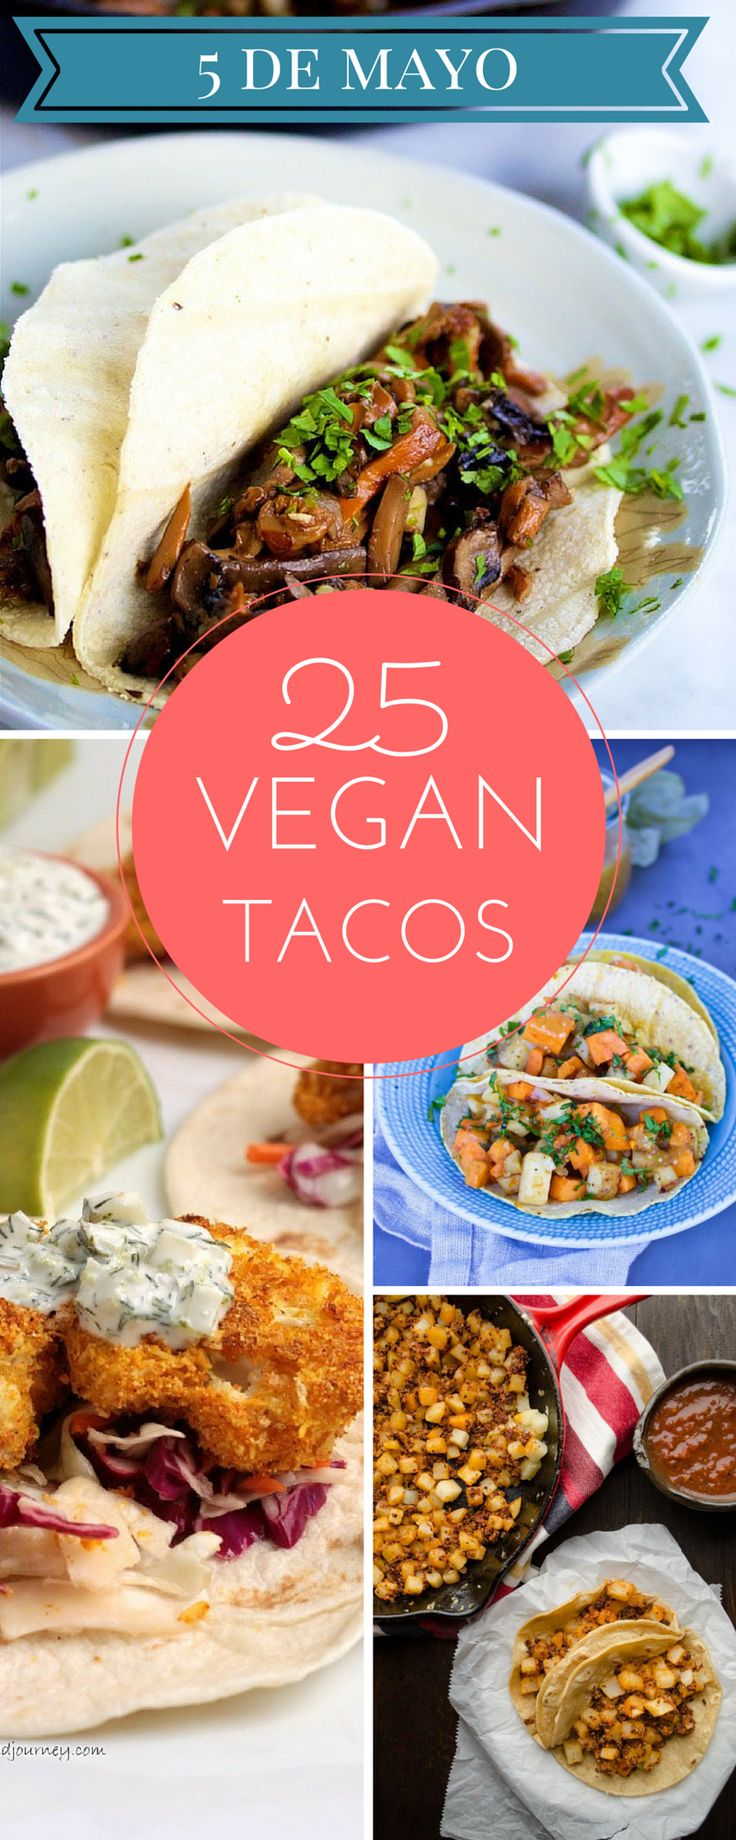 Best 25 mexican dinner party ideas on pinterest mexi corn best 25 mexican dinner party ideas on pinterest mexi corn recipe old el paso enchilada recipe and taco ideas for dinner forumfinder Choice Image